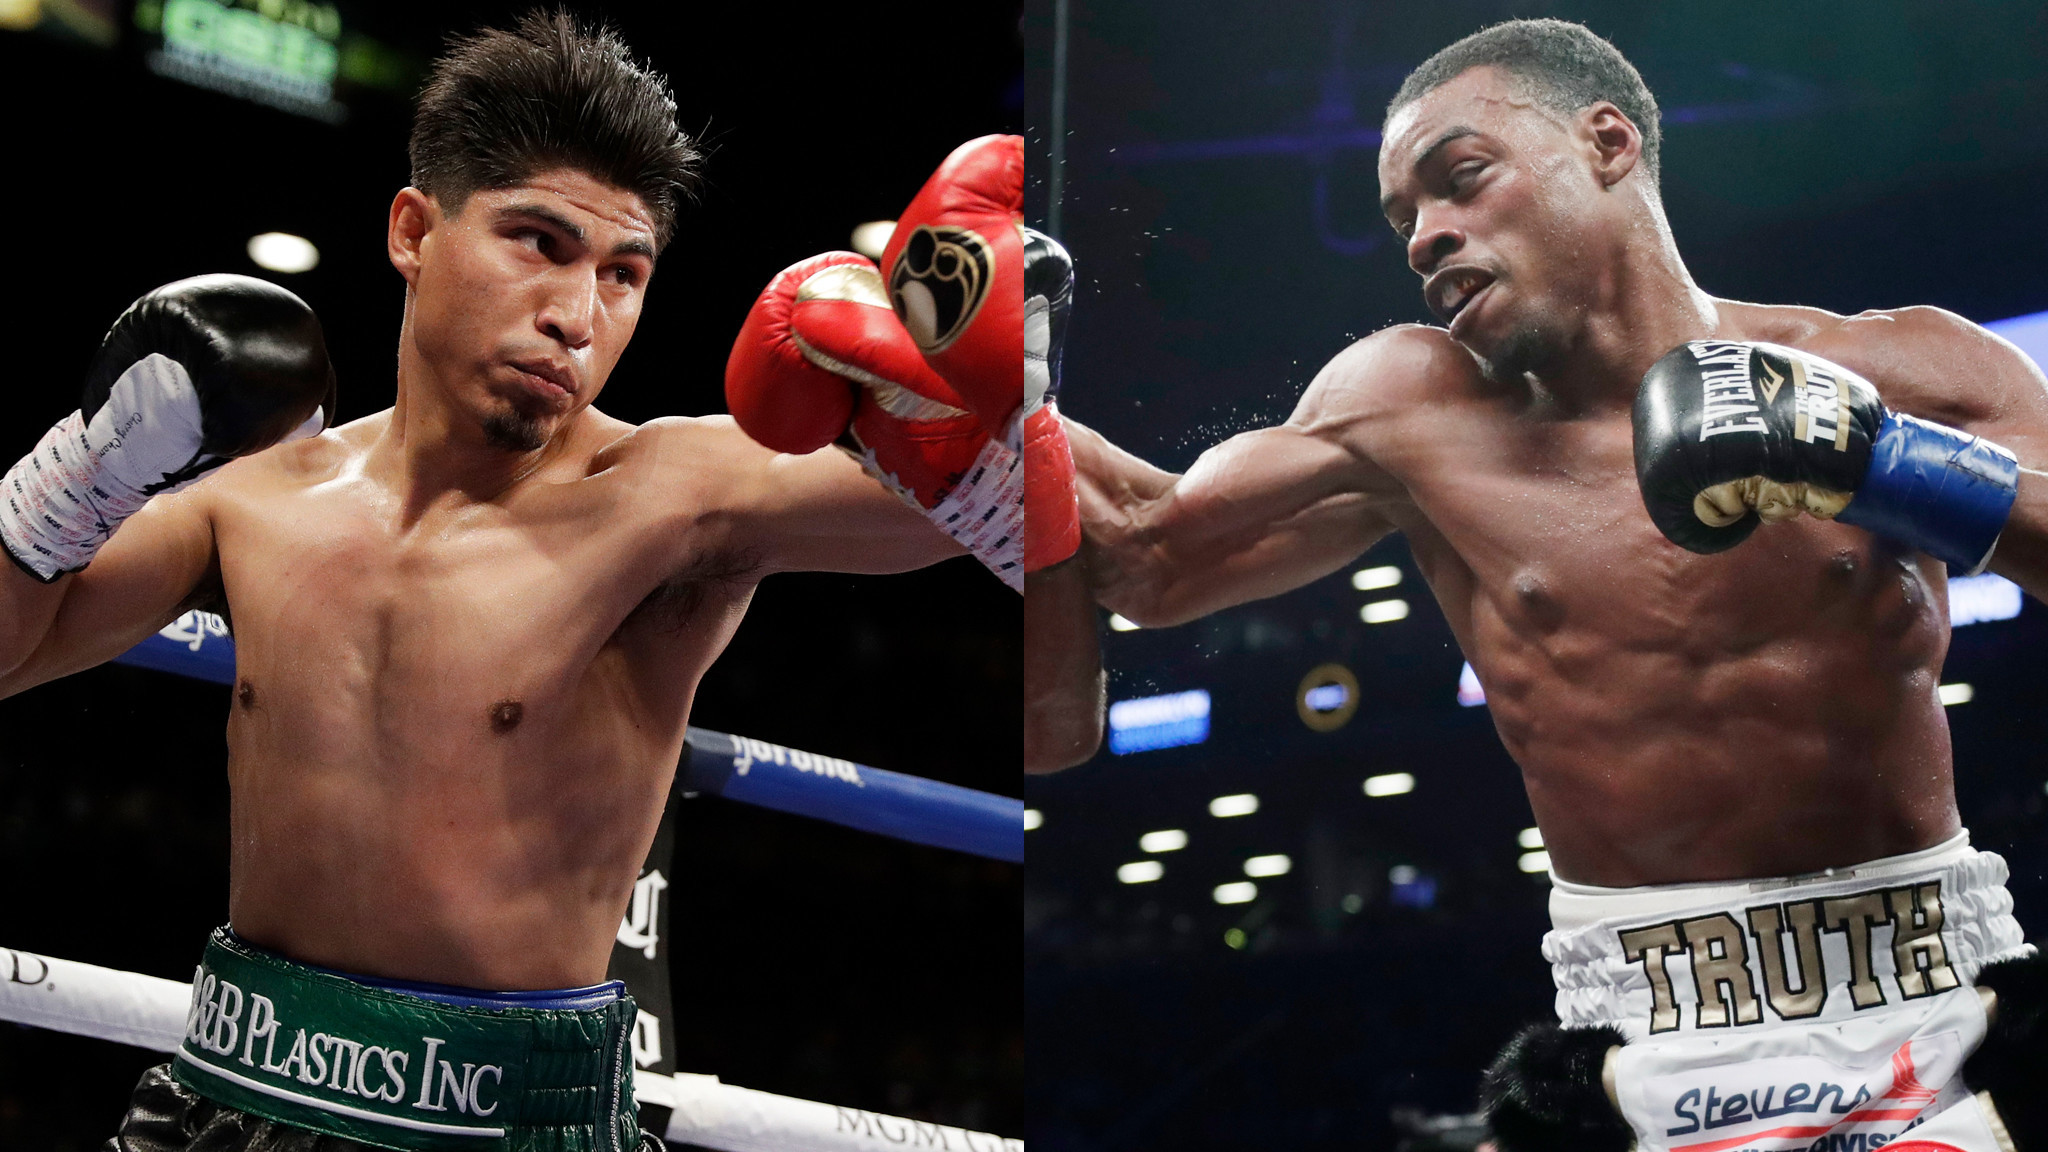 Mikey Garcia vs. Errol Spence: Live updates and analysis